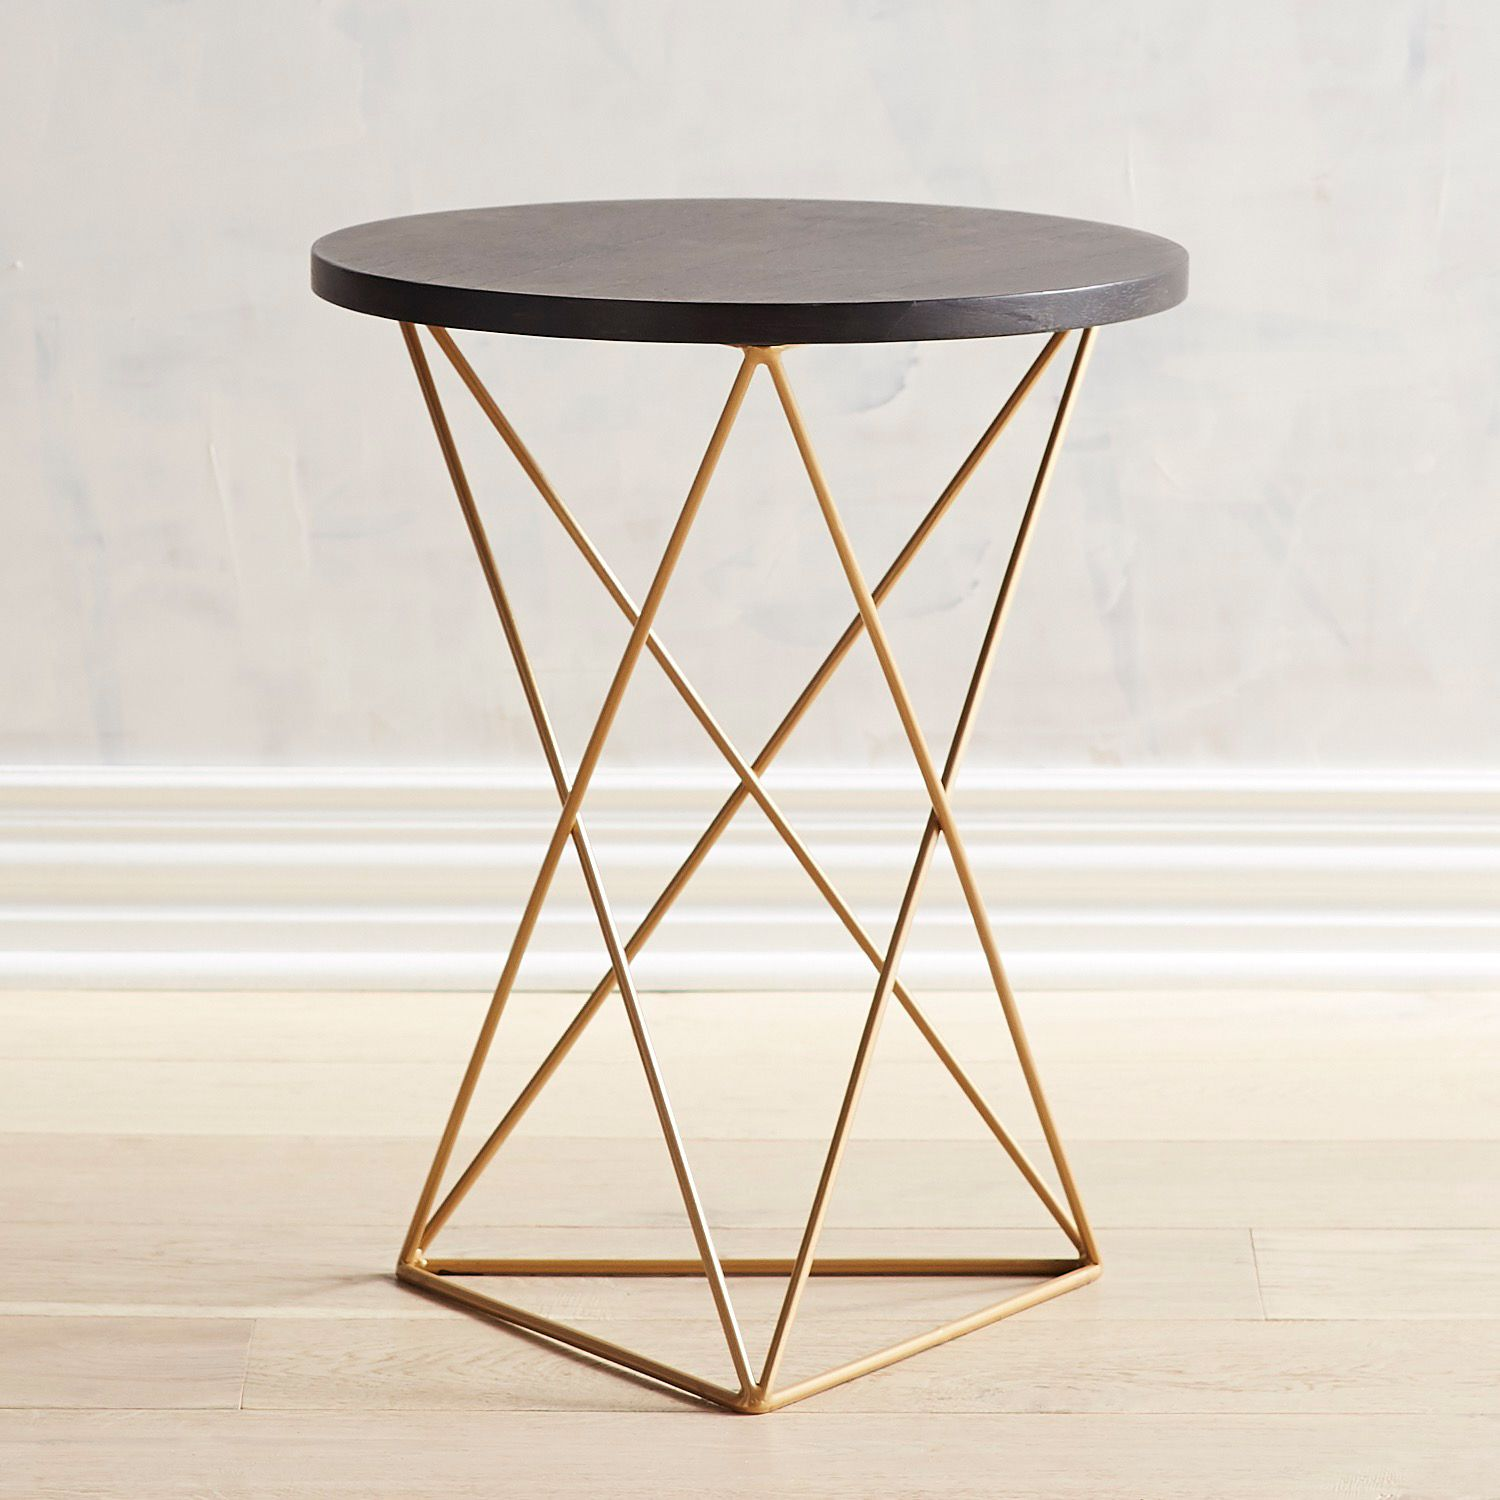 modern accent table pier imports wood umbrella stand base cordless lamps for living room mirrored coffee target round marble waterproof cover outdoor garden dining hampton bay